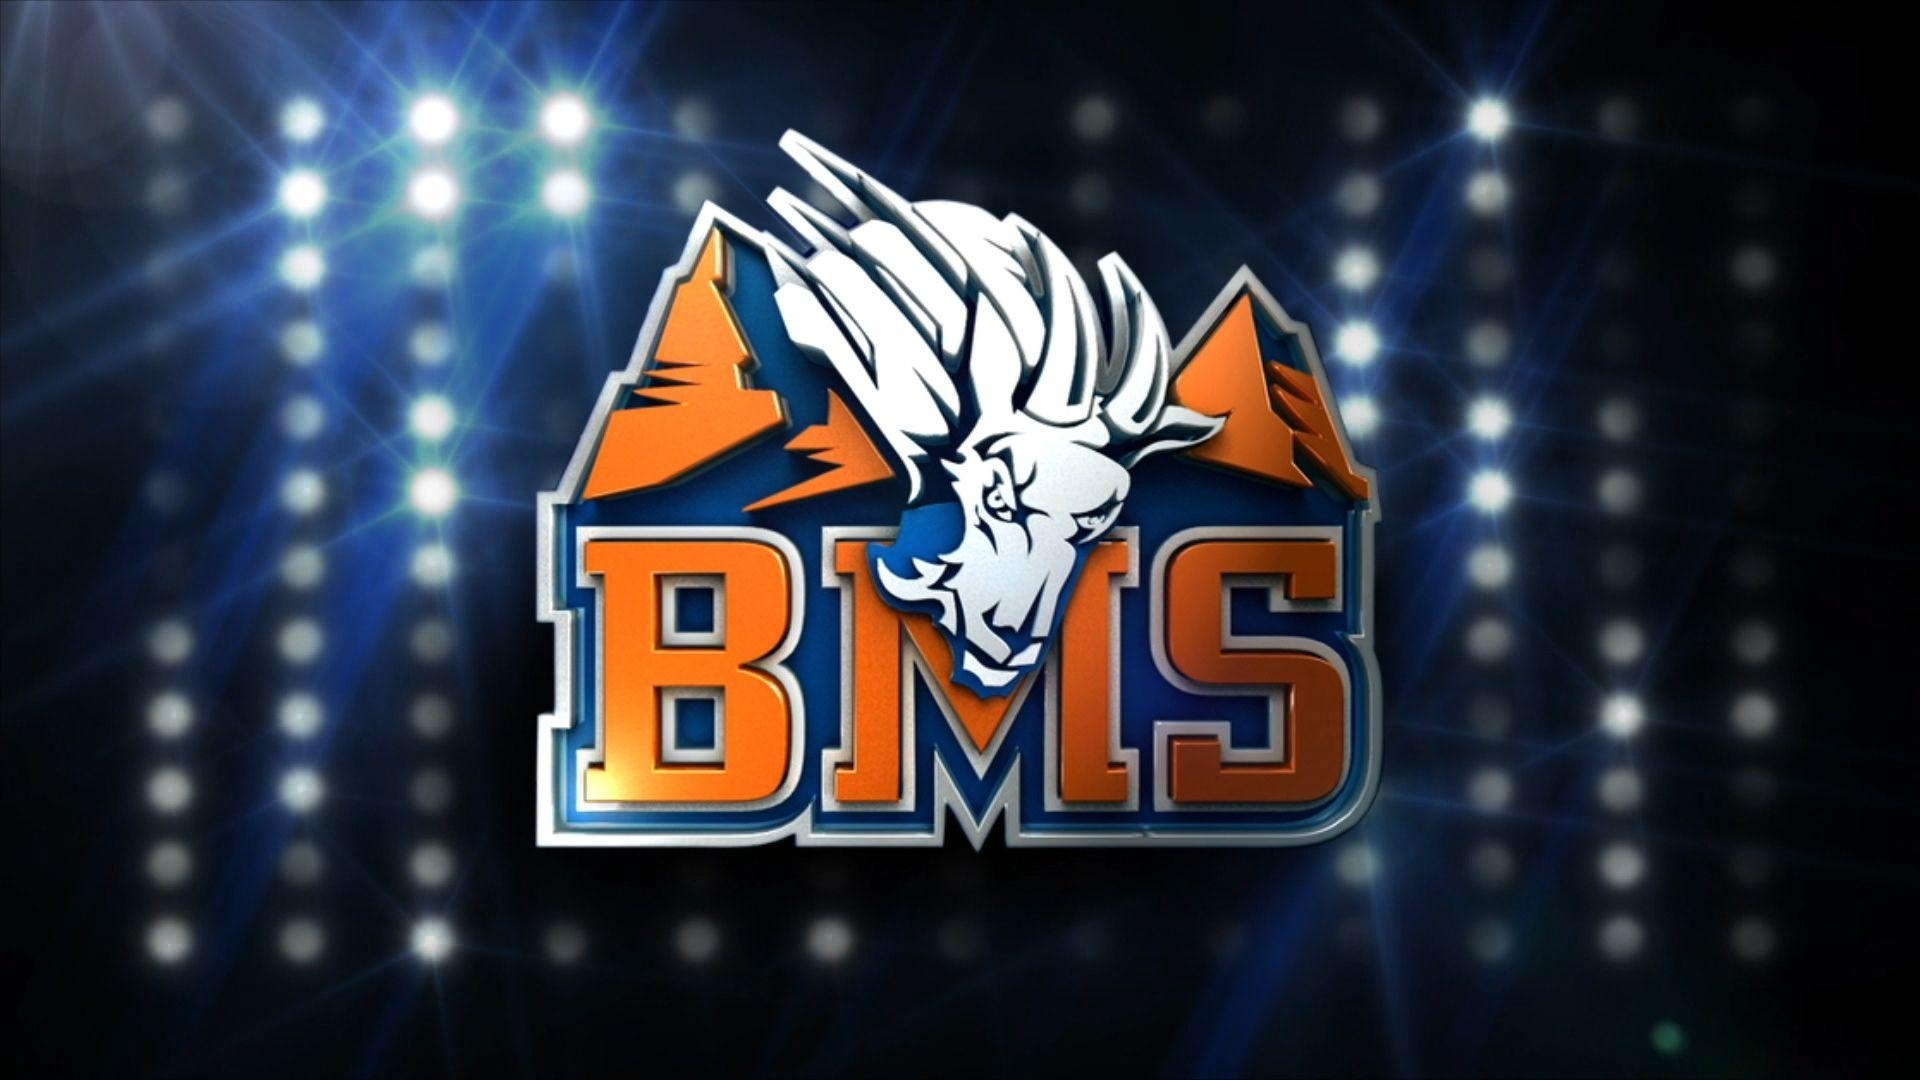 10 Most Popular Blue Mountain State Wallpapers FULL HD 1920×1080 For PC Background